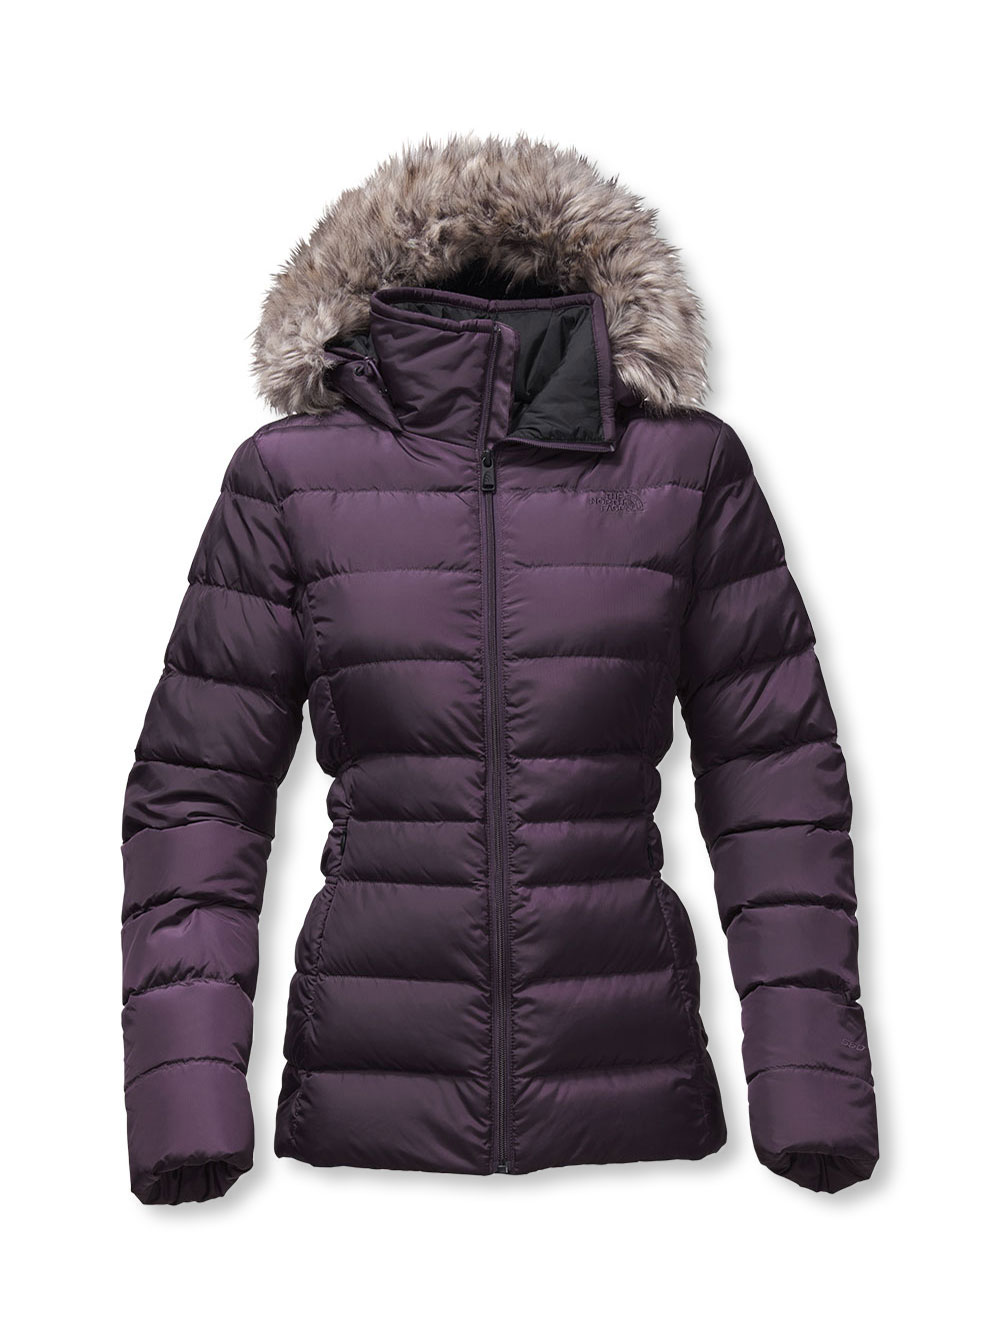 Black//Purple 6X G-III Mens Three and Out 3-in-1 Systems Jacket